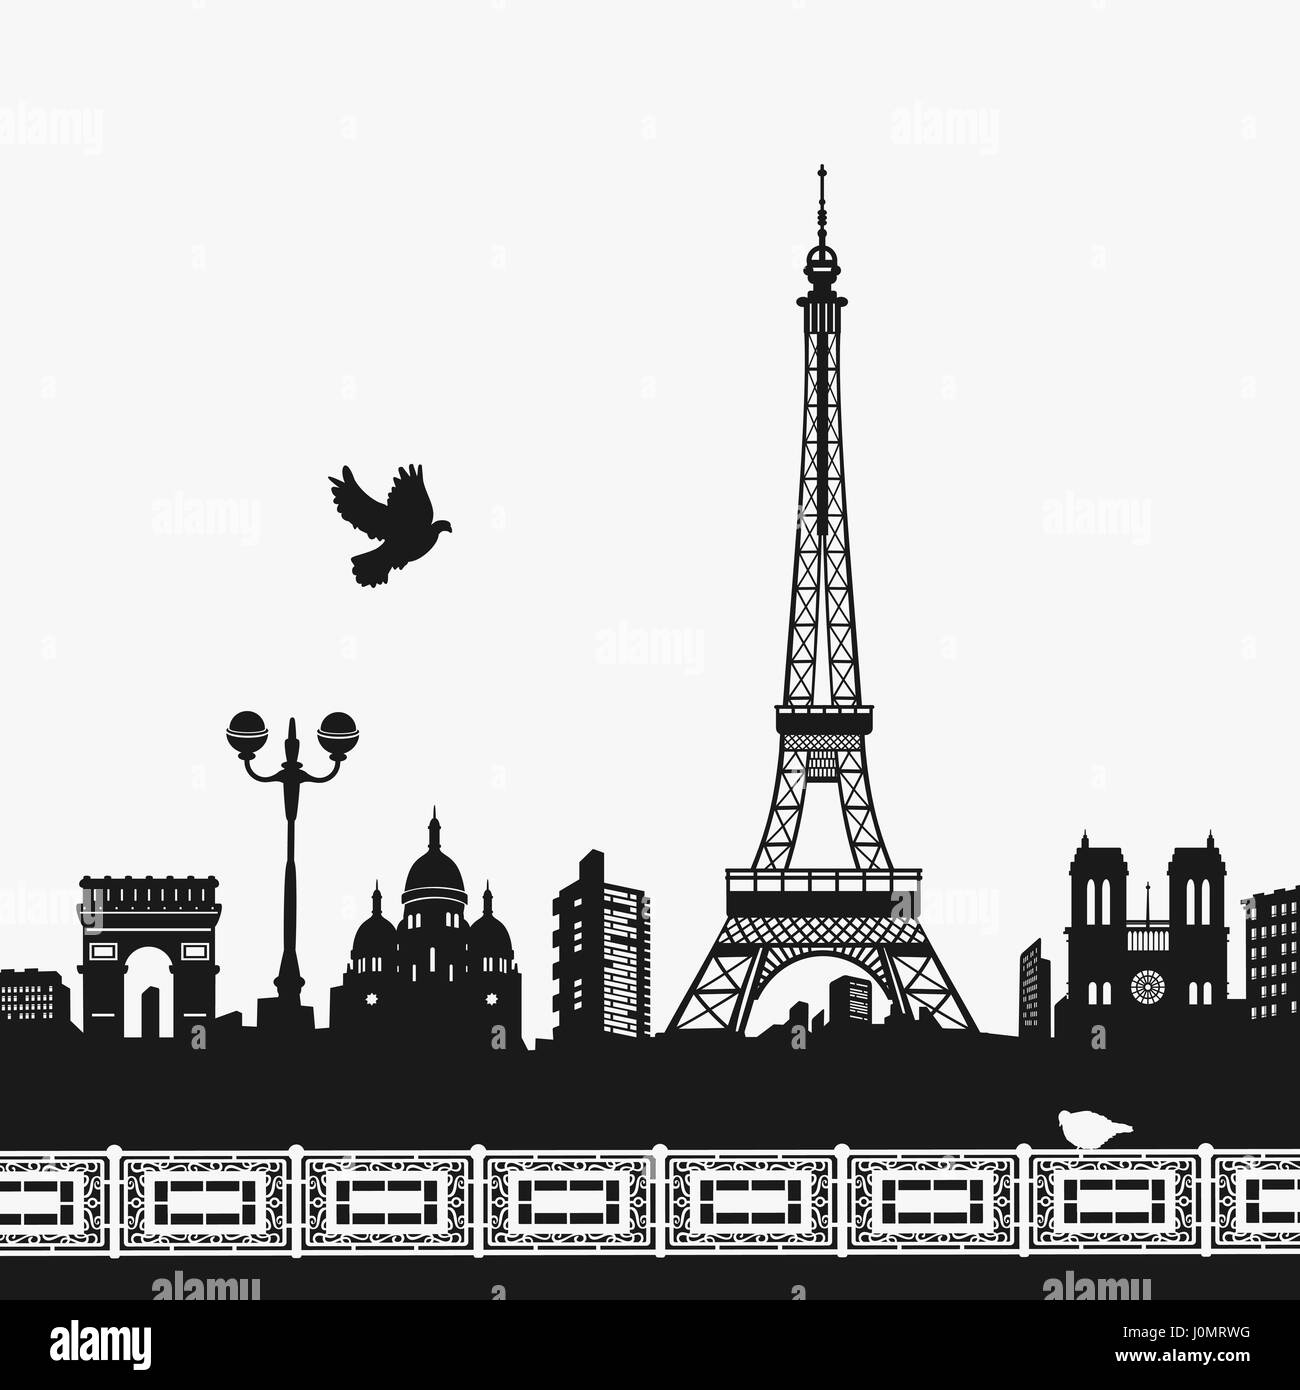 Vector Silhouette of the Eiffel Tower - Stock Vector